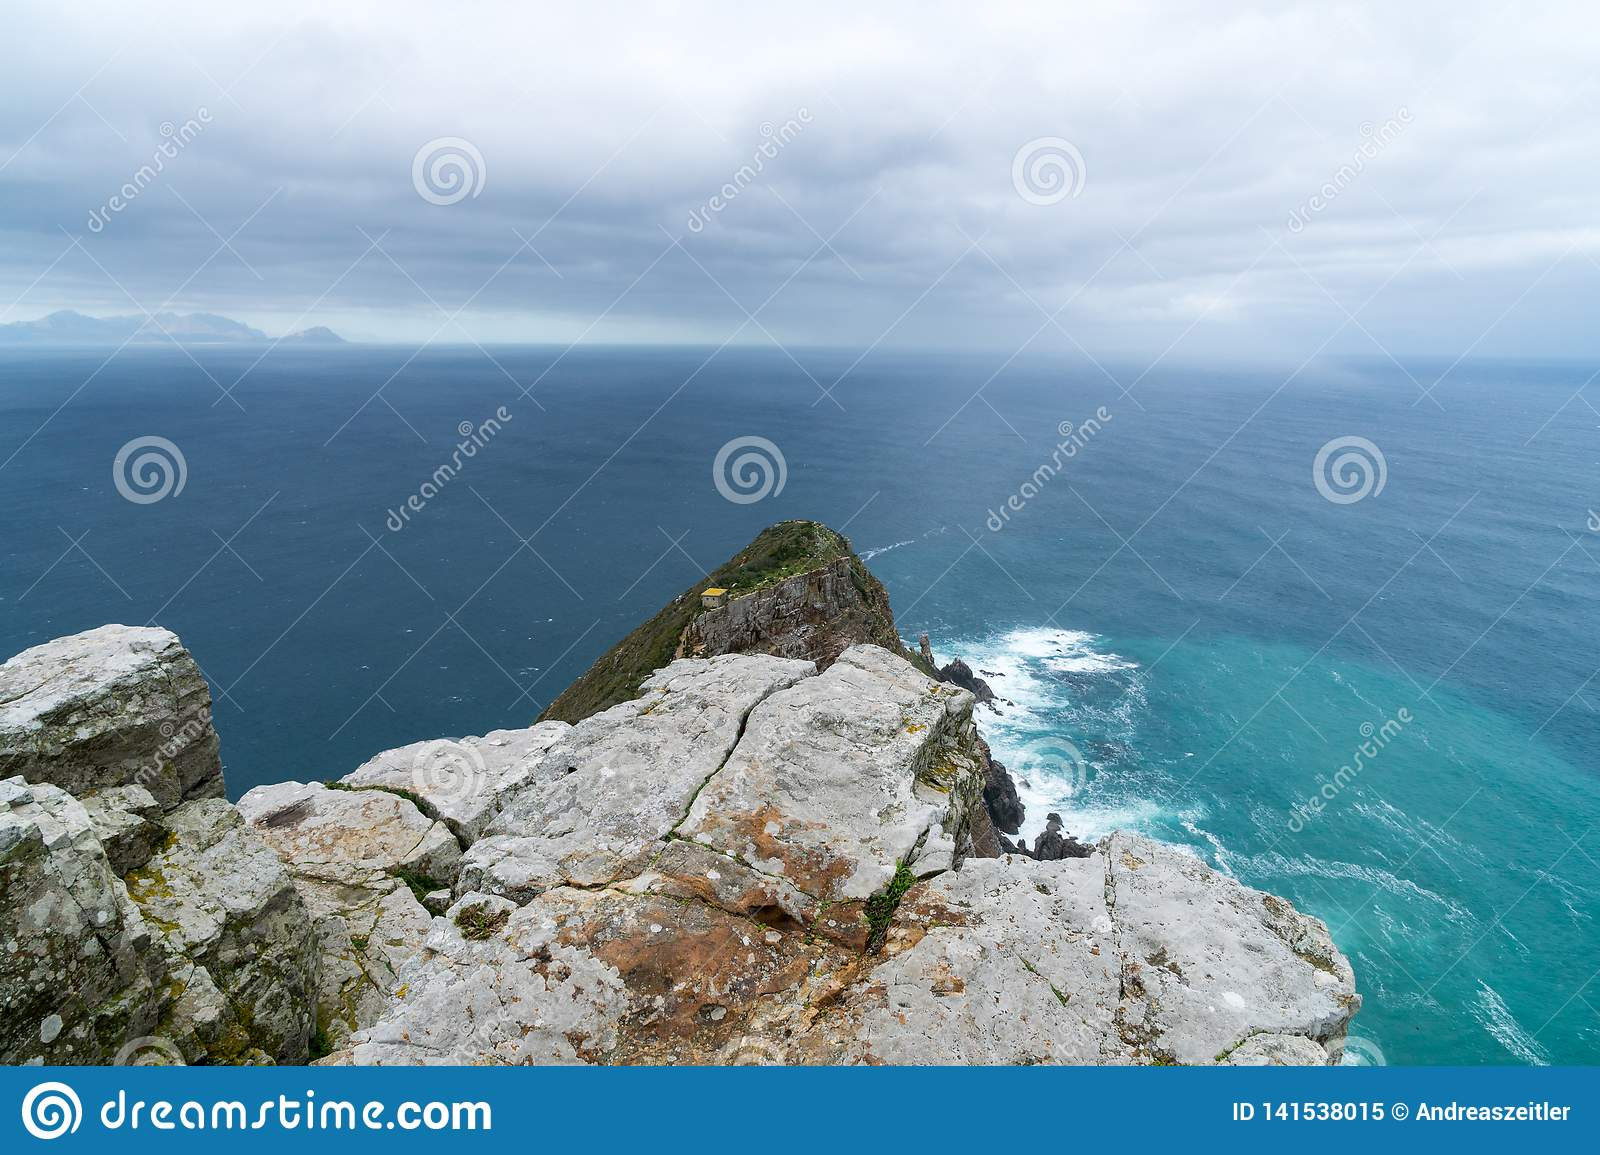 The new lighthouse of Cape Point in Cape of Good Hope Nature Reserve in Cape Peninsula, Western Cape, South Africa